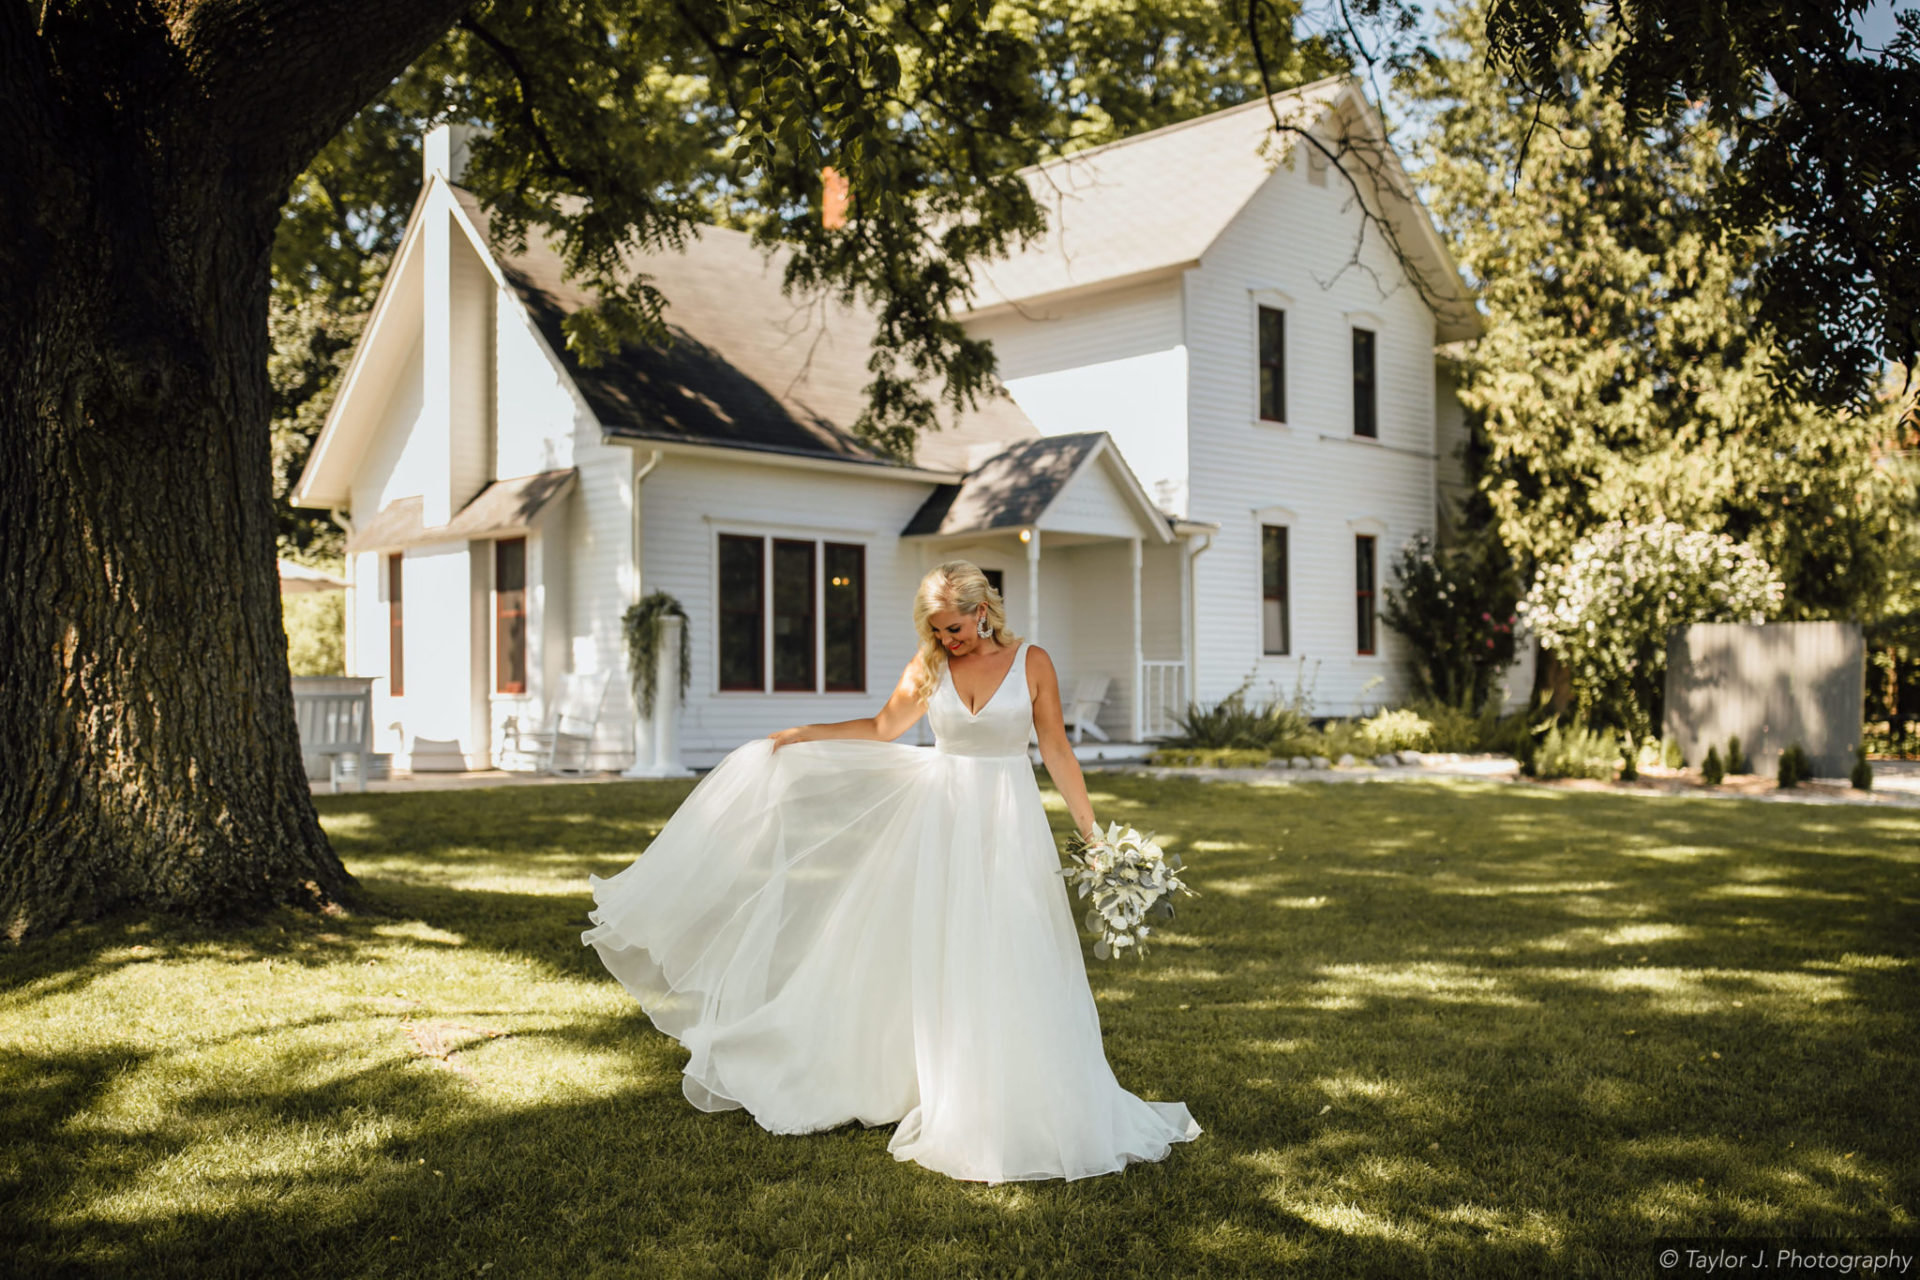 northern michigan wedding at aurora cellars farm house